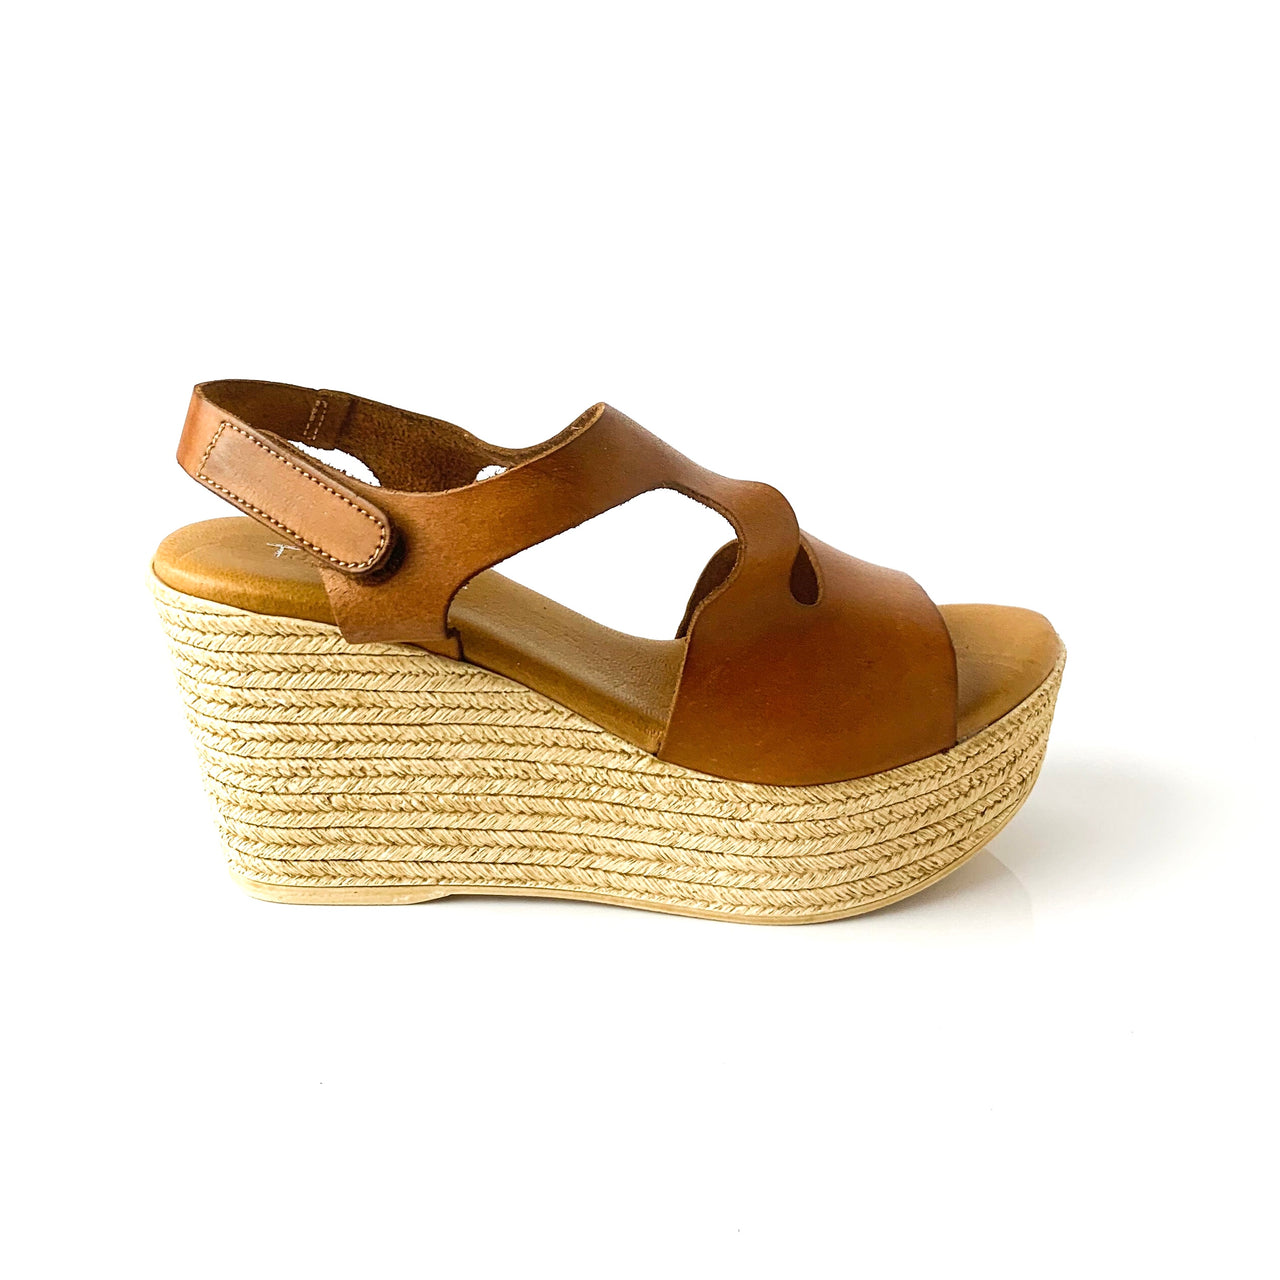 Sierra | Brown Platform Sandals - TrystShoes